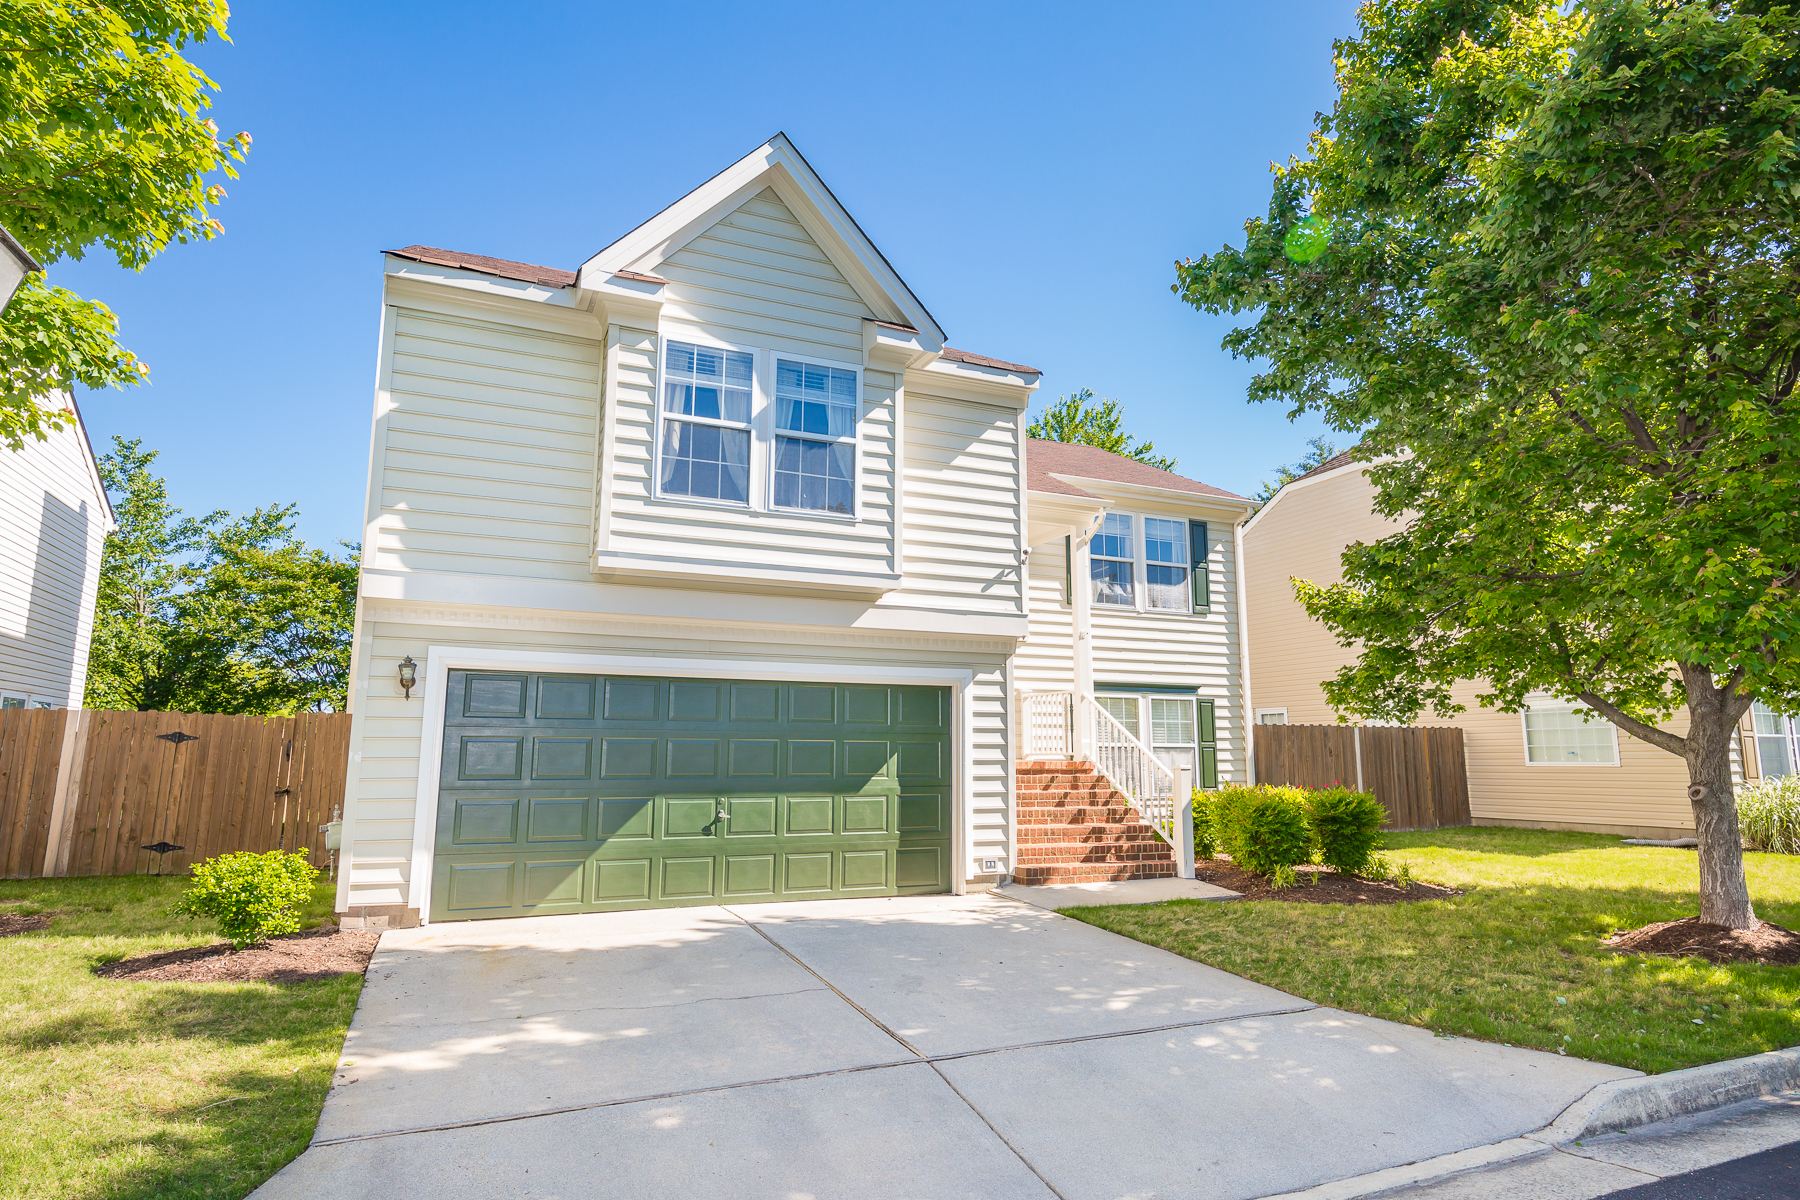 Single Family Home for Sale at Battlefield Commons 404 Kings Bishop Court Chesapeake, Virginia 23320 United States